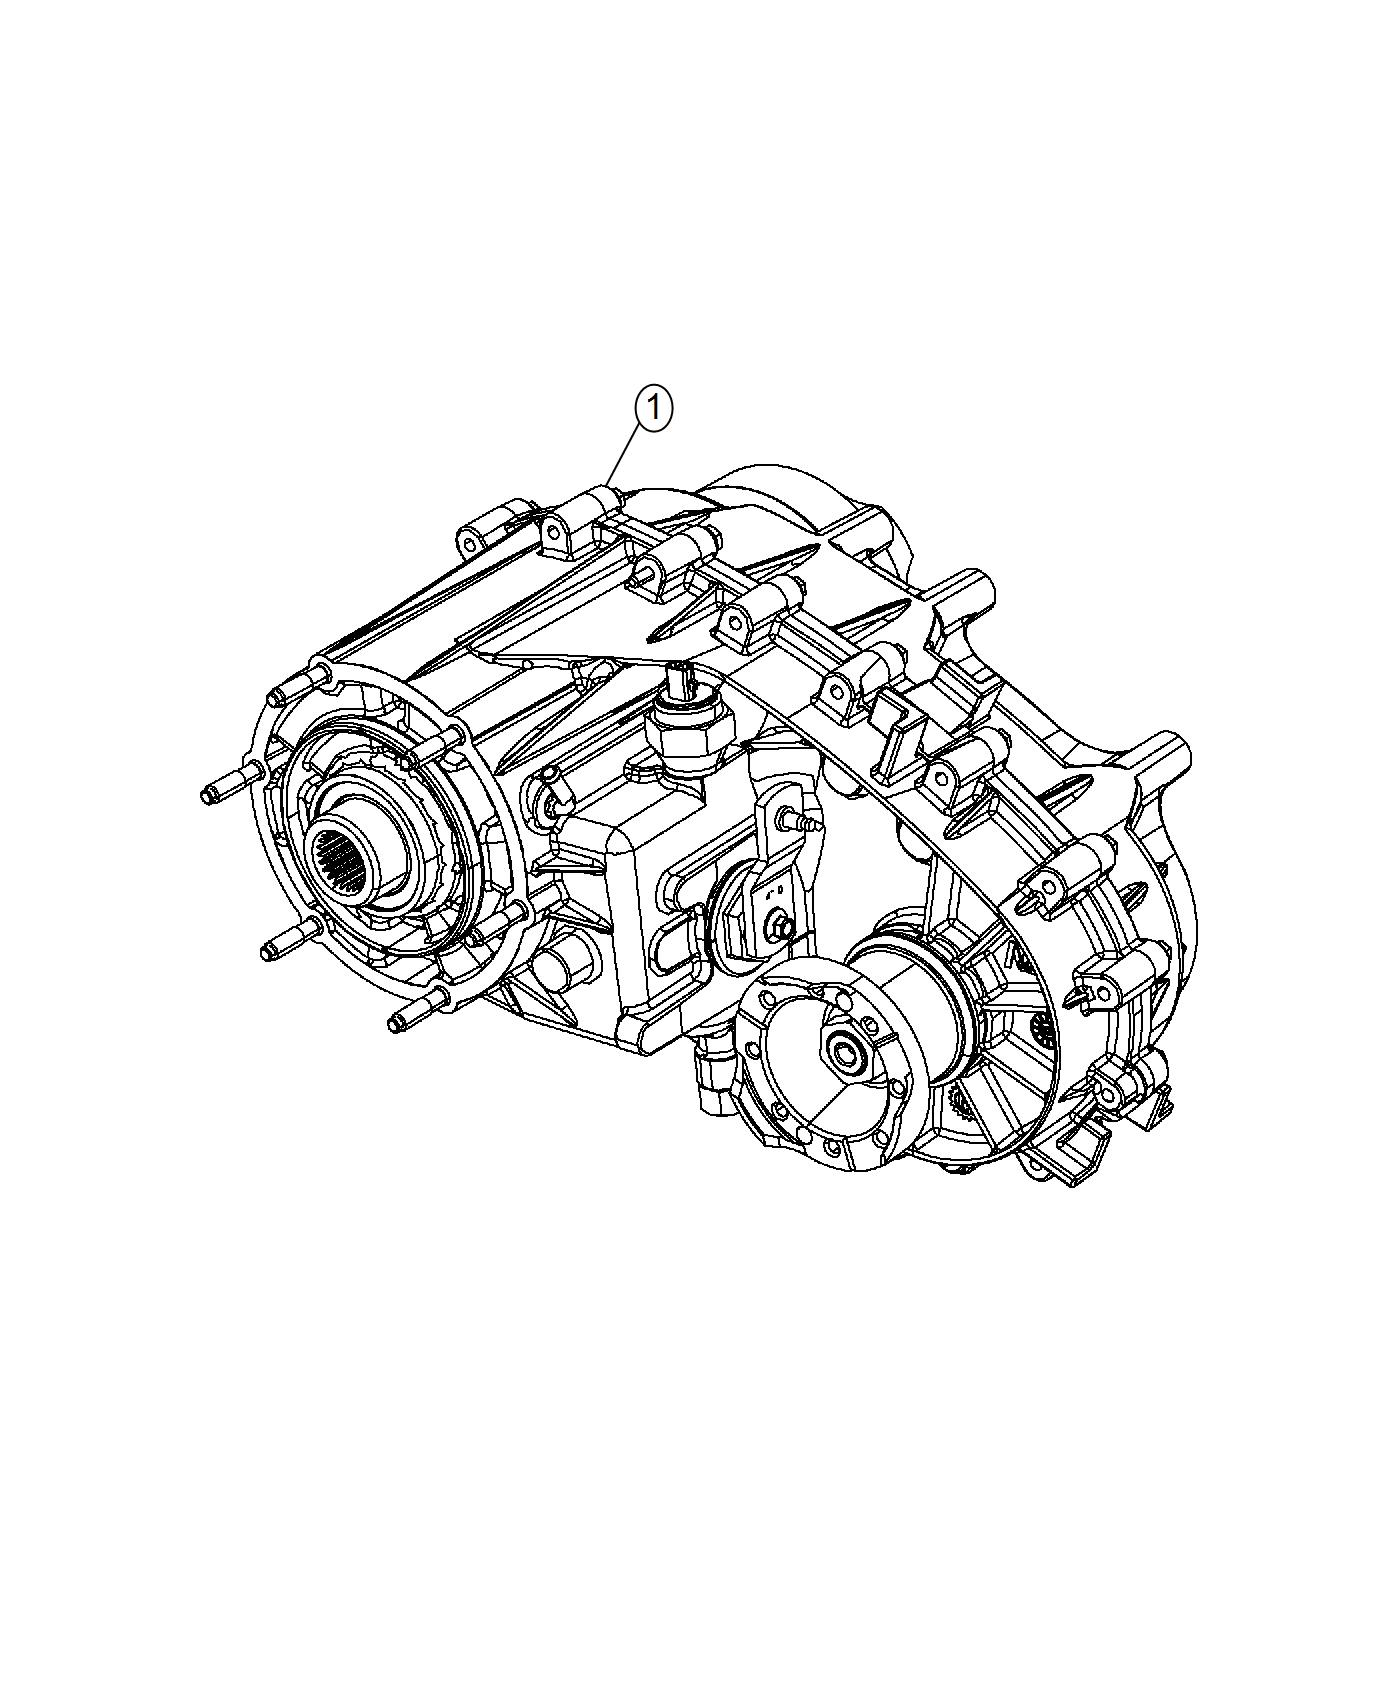 2016 Jeep Wrangler Transfer case. Np241. Remanufactured